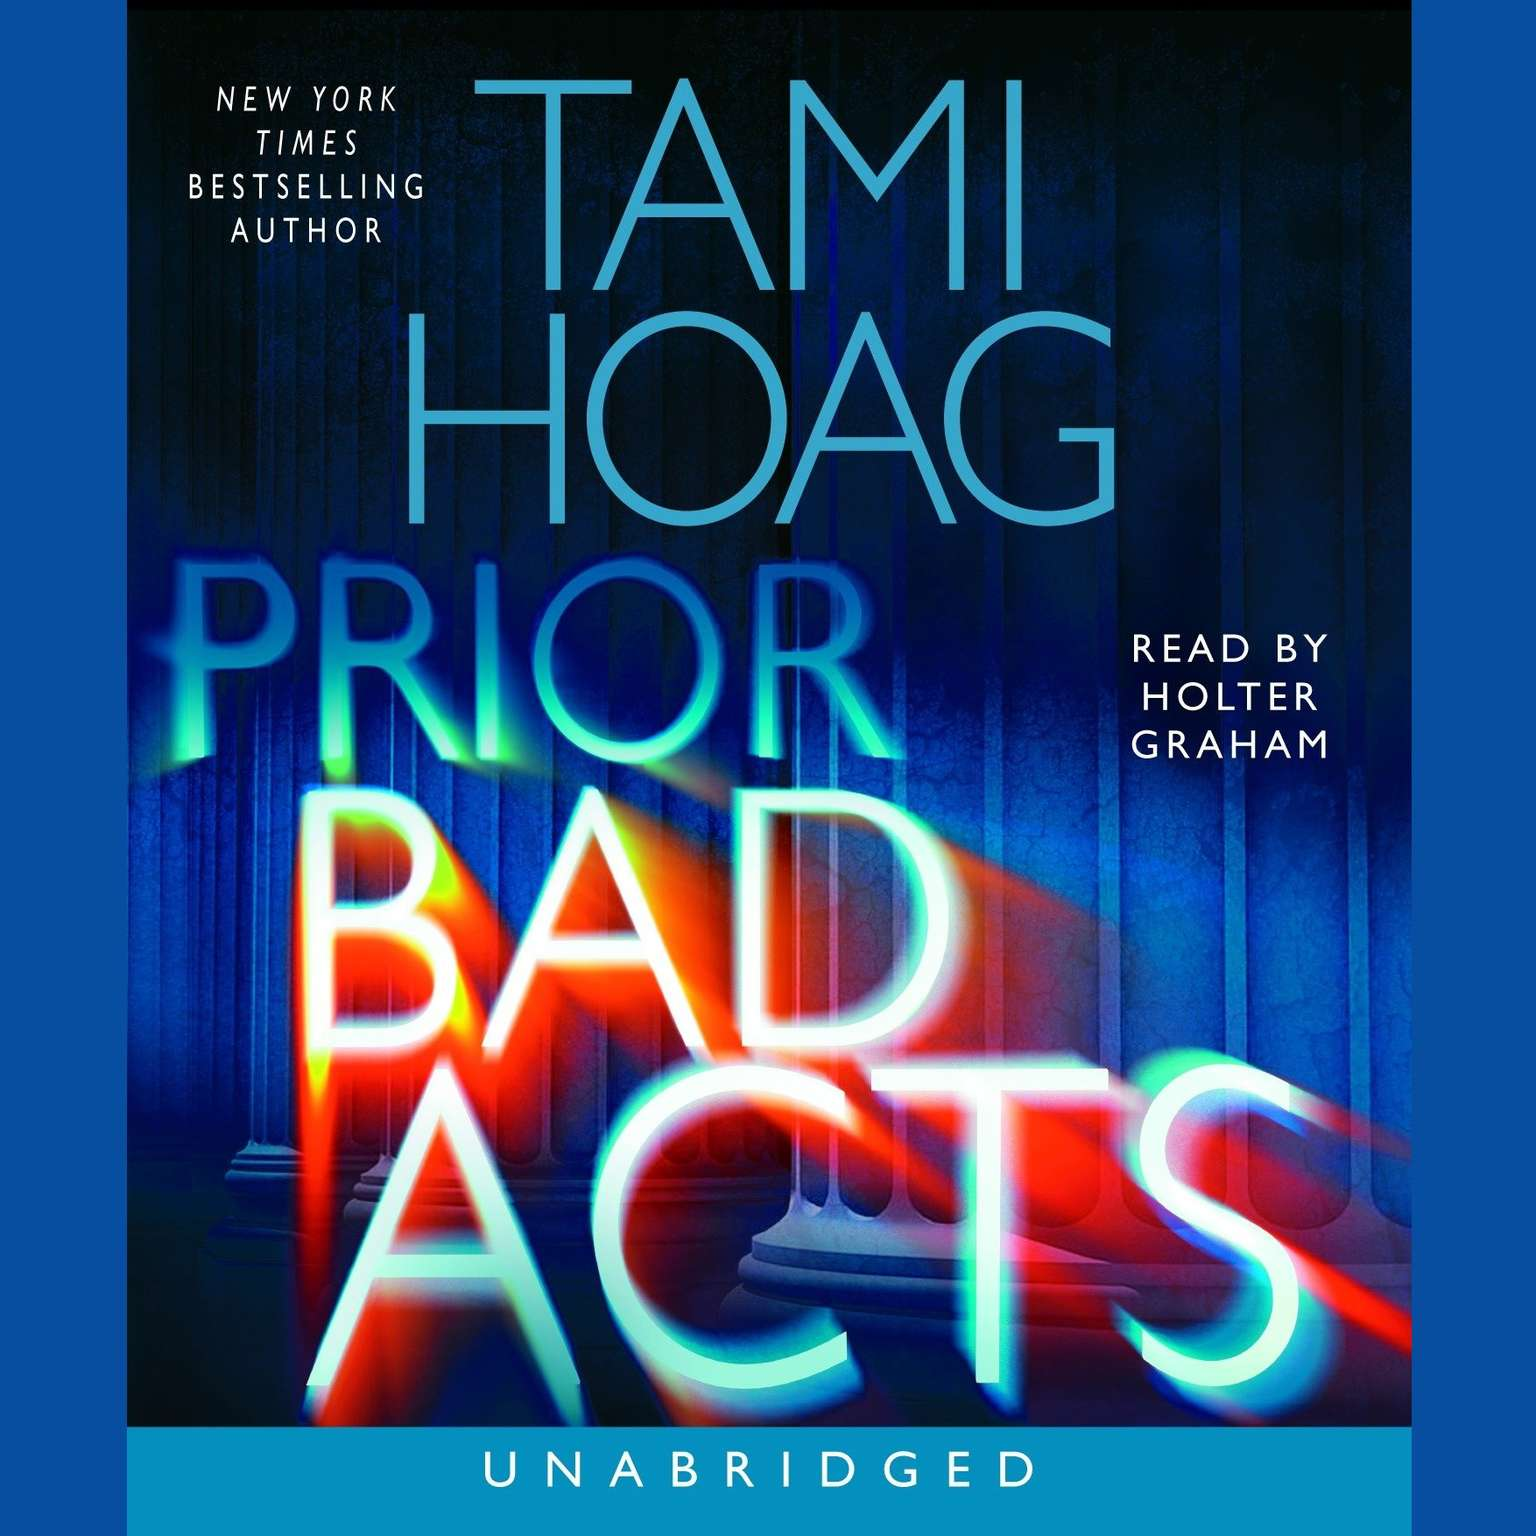 Printable Prior Bad Acts Audiobook Cover Art